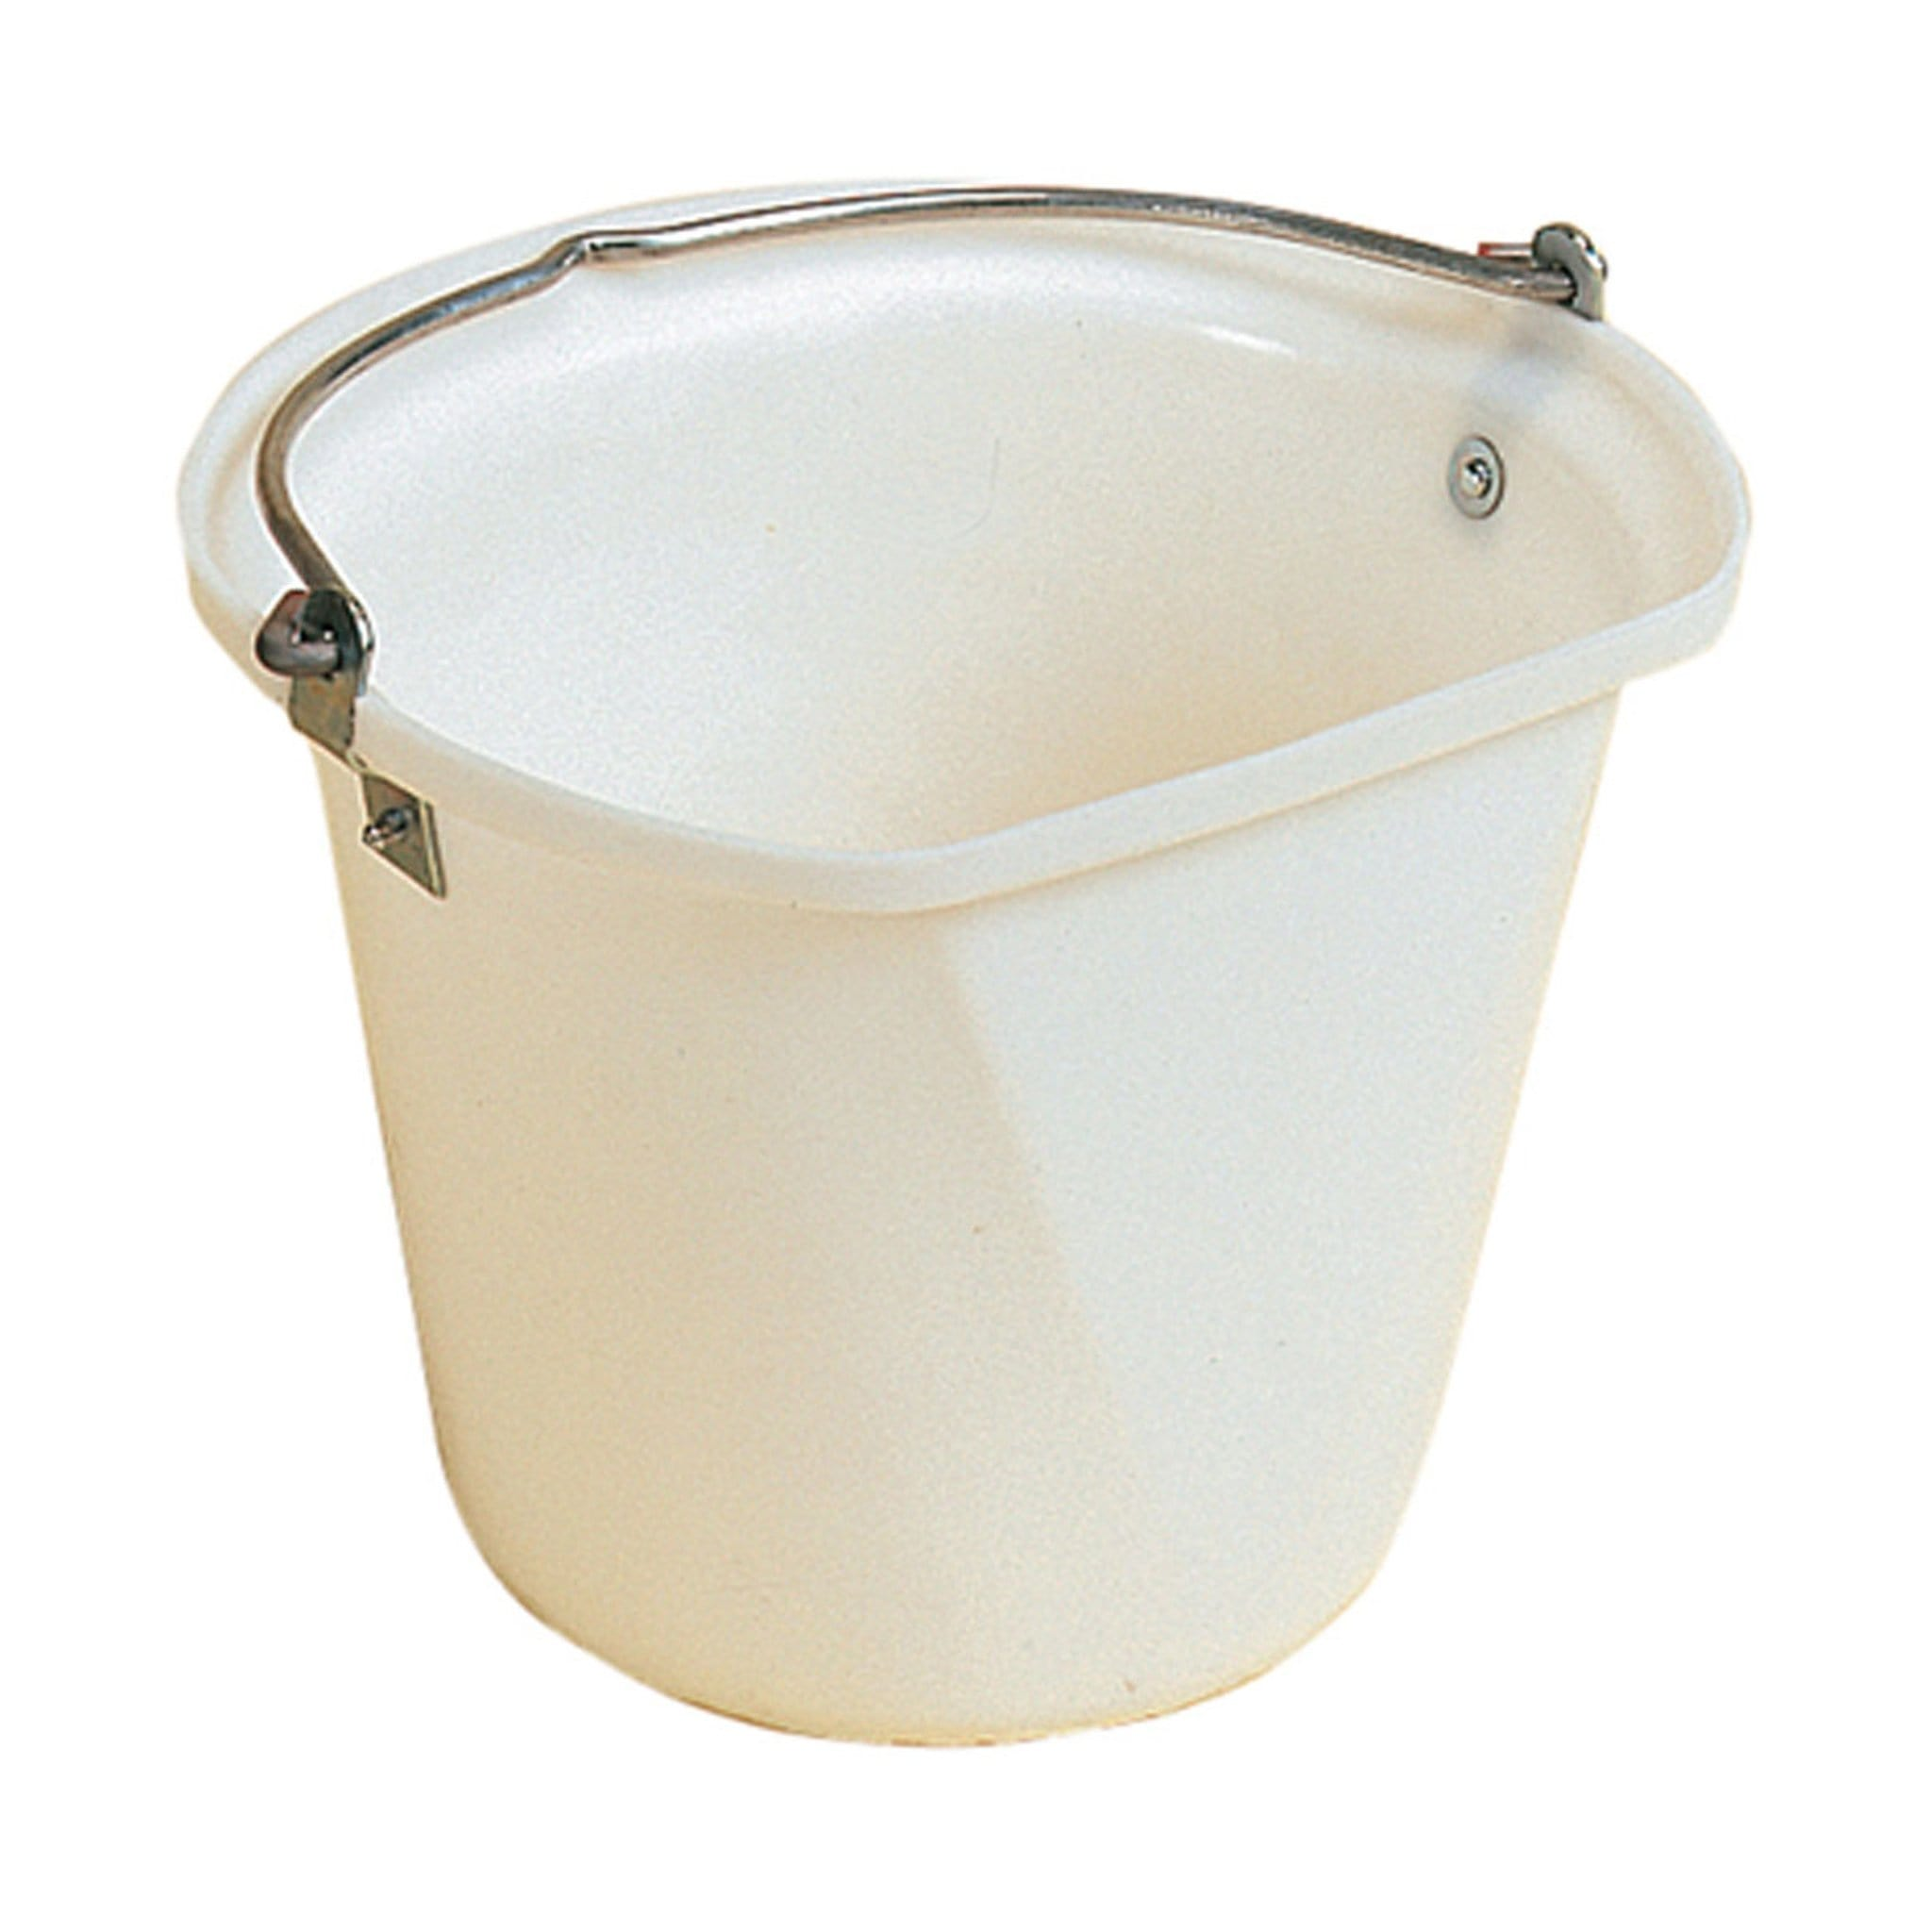 Stubbs Large Stable Bucket 7795 White